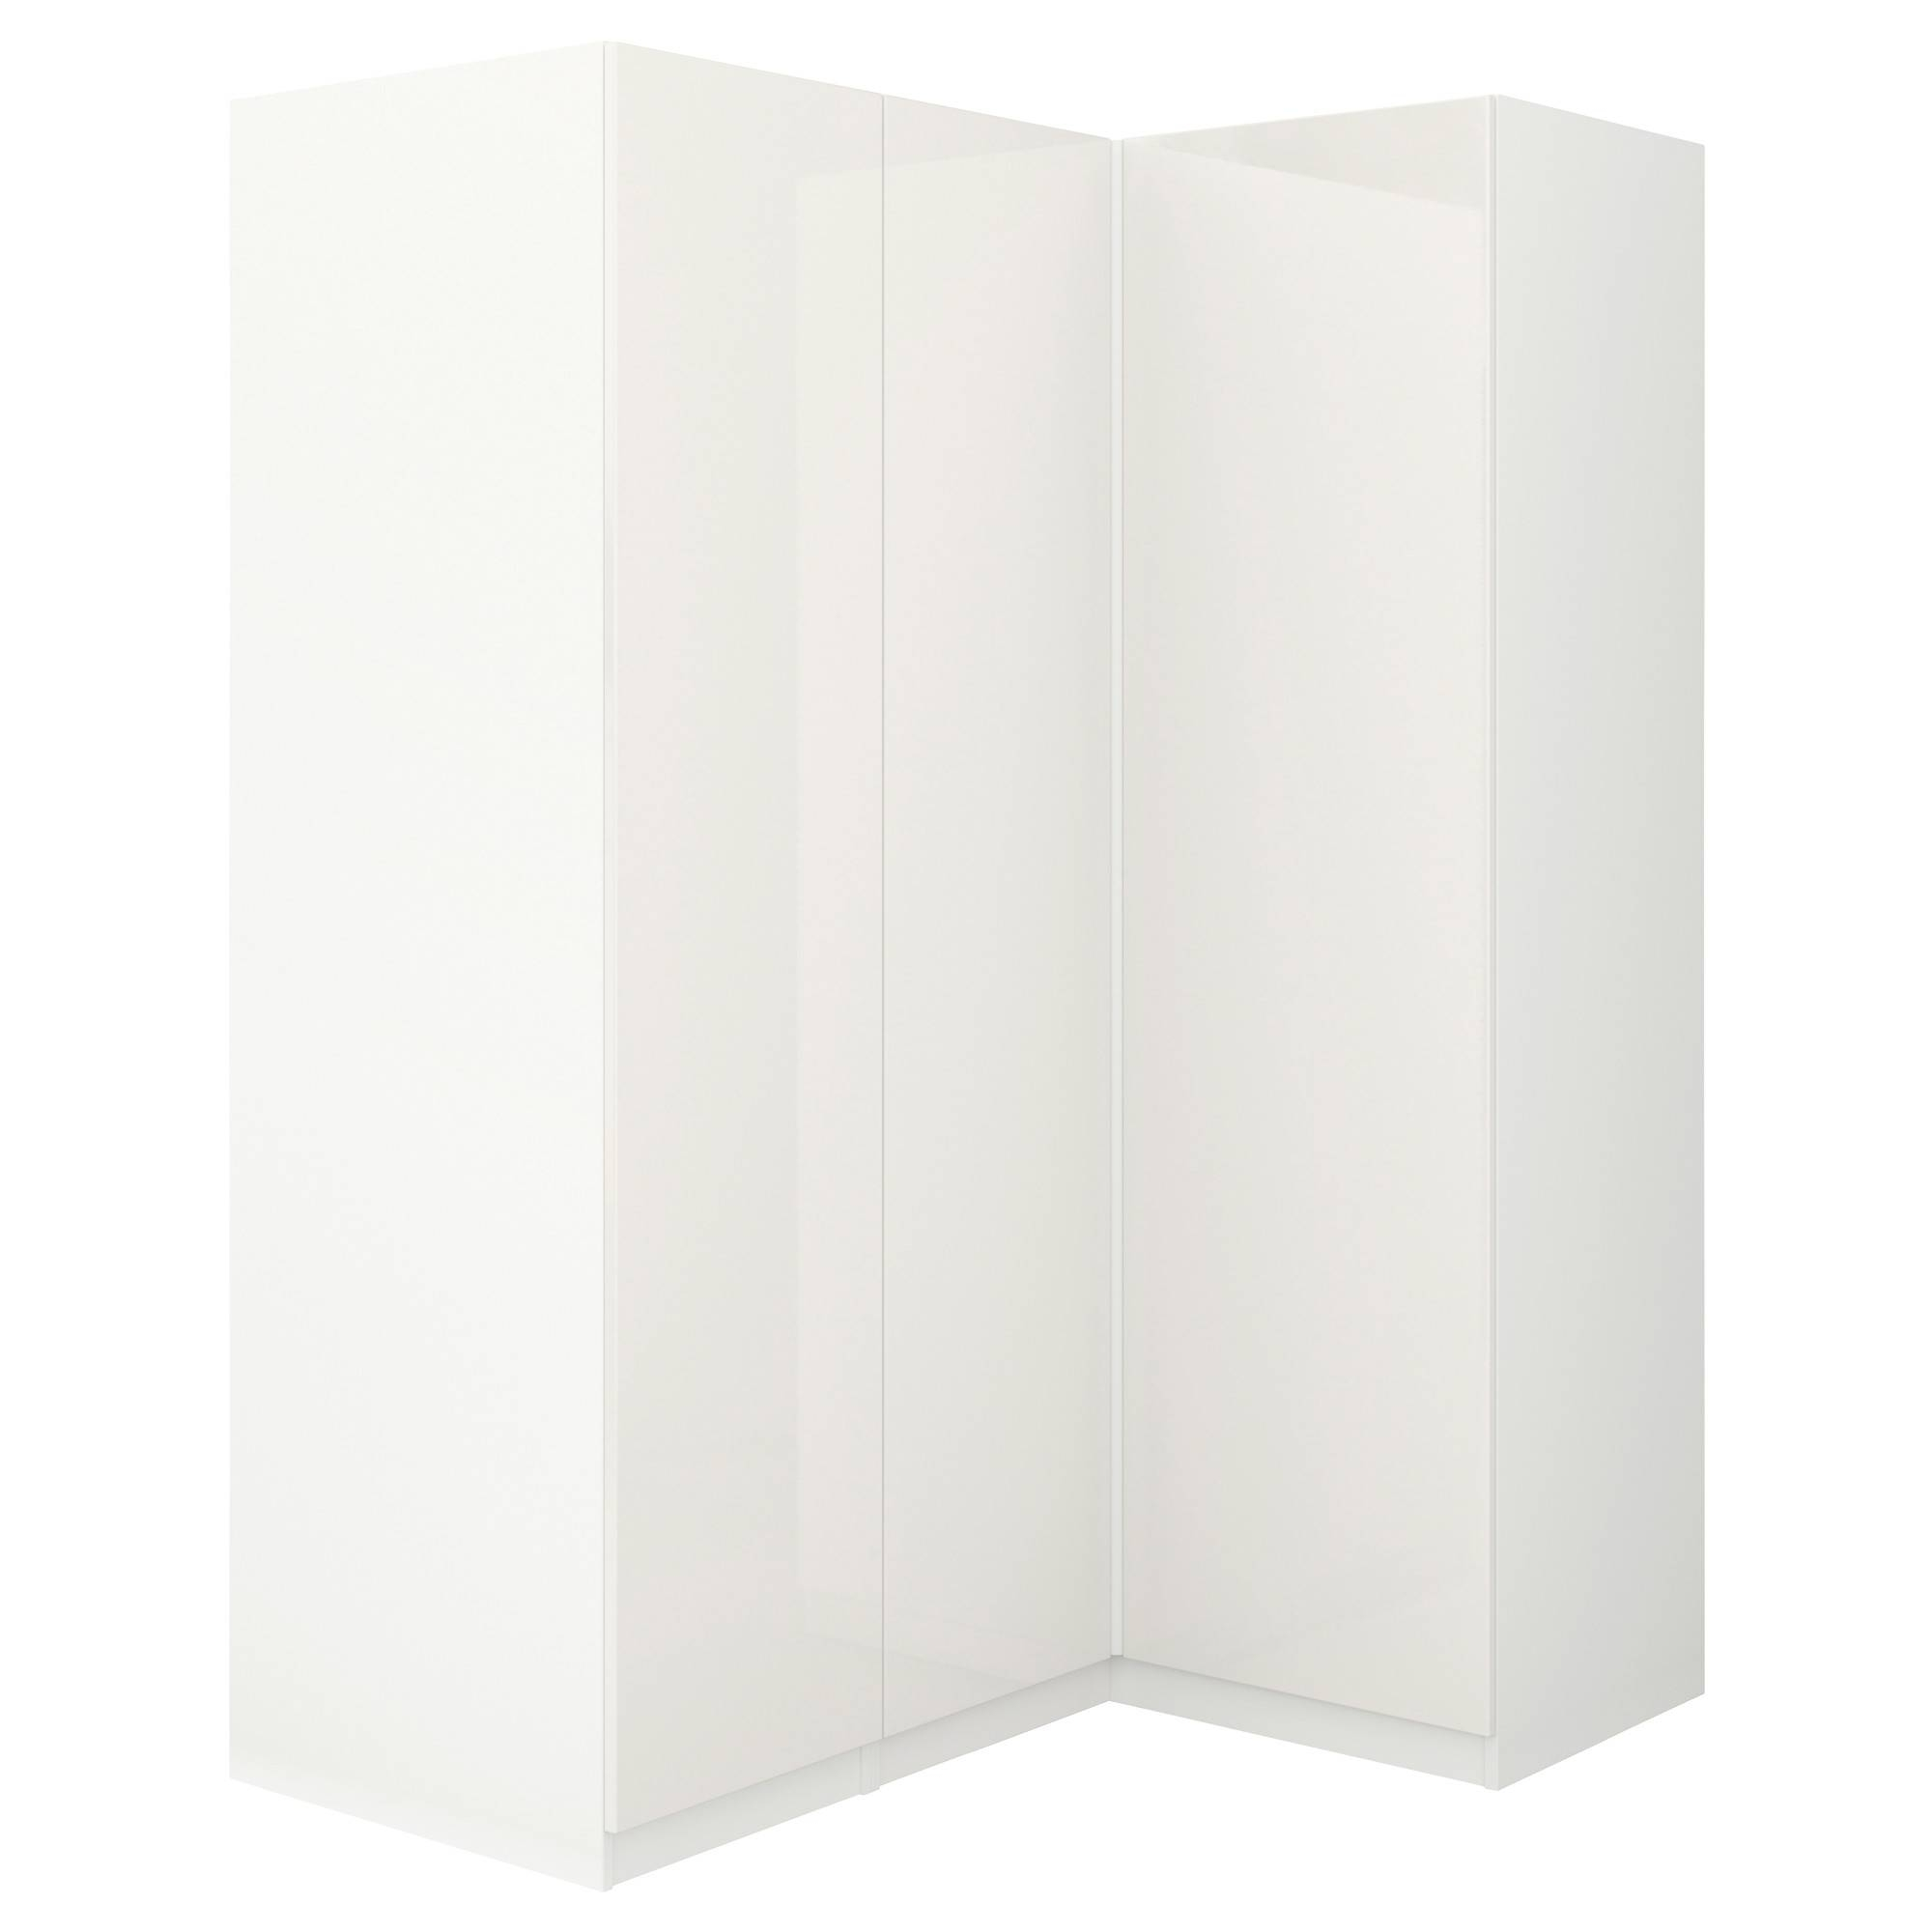 Pax Corner Wardrobe White/fardal High-Gloss/white 160/111X201 Cm regarding White Corner Wardrobes (Image 6 of 15)